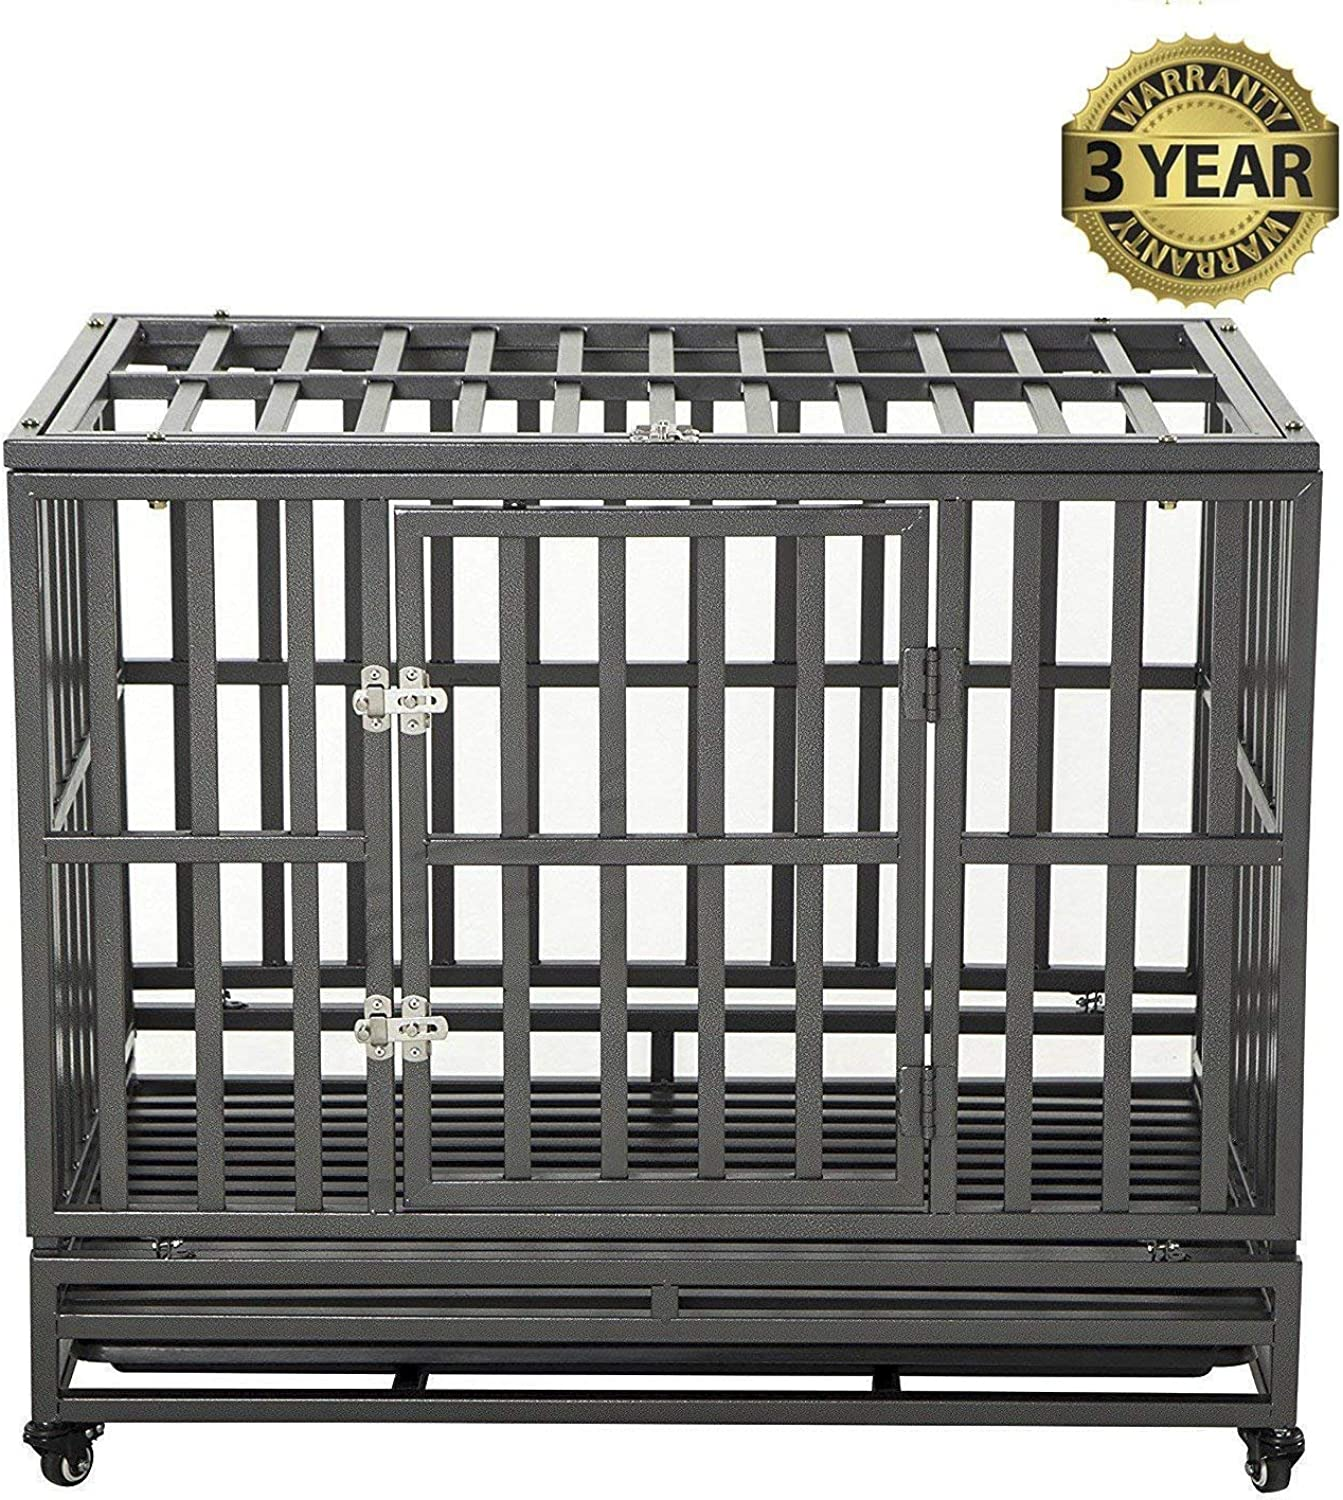 LUCKUP Heavy Duty Dog Cage Strong Metal Kennel and Crate for Medium and Large Dogs, Pet Playpen with Four Wheels,Easy to Install